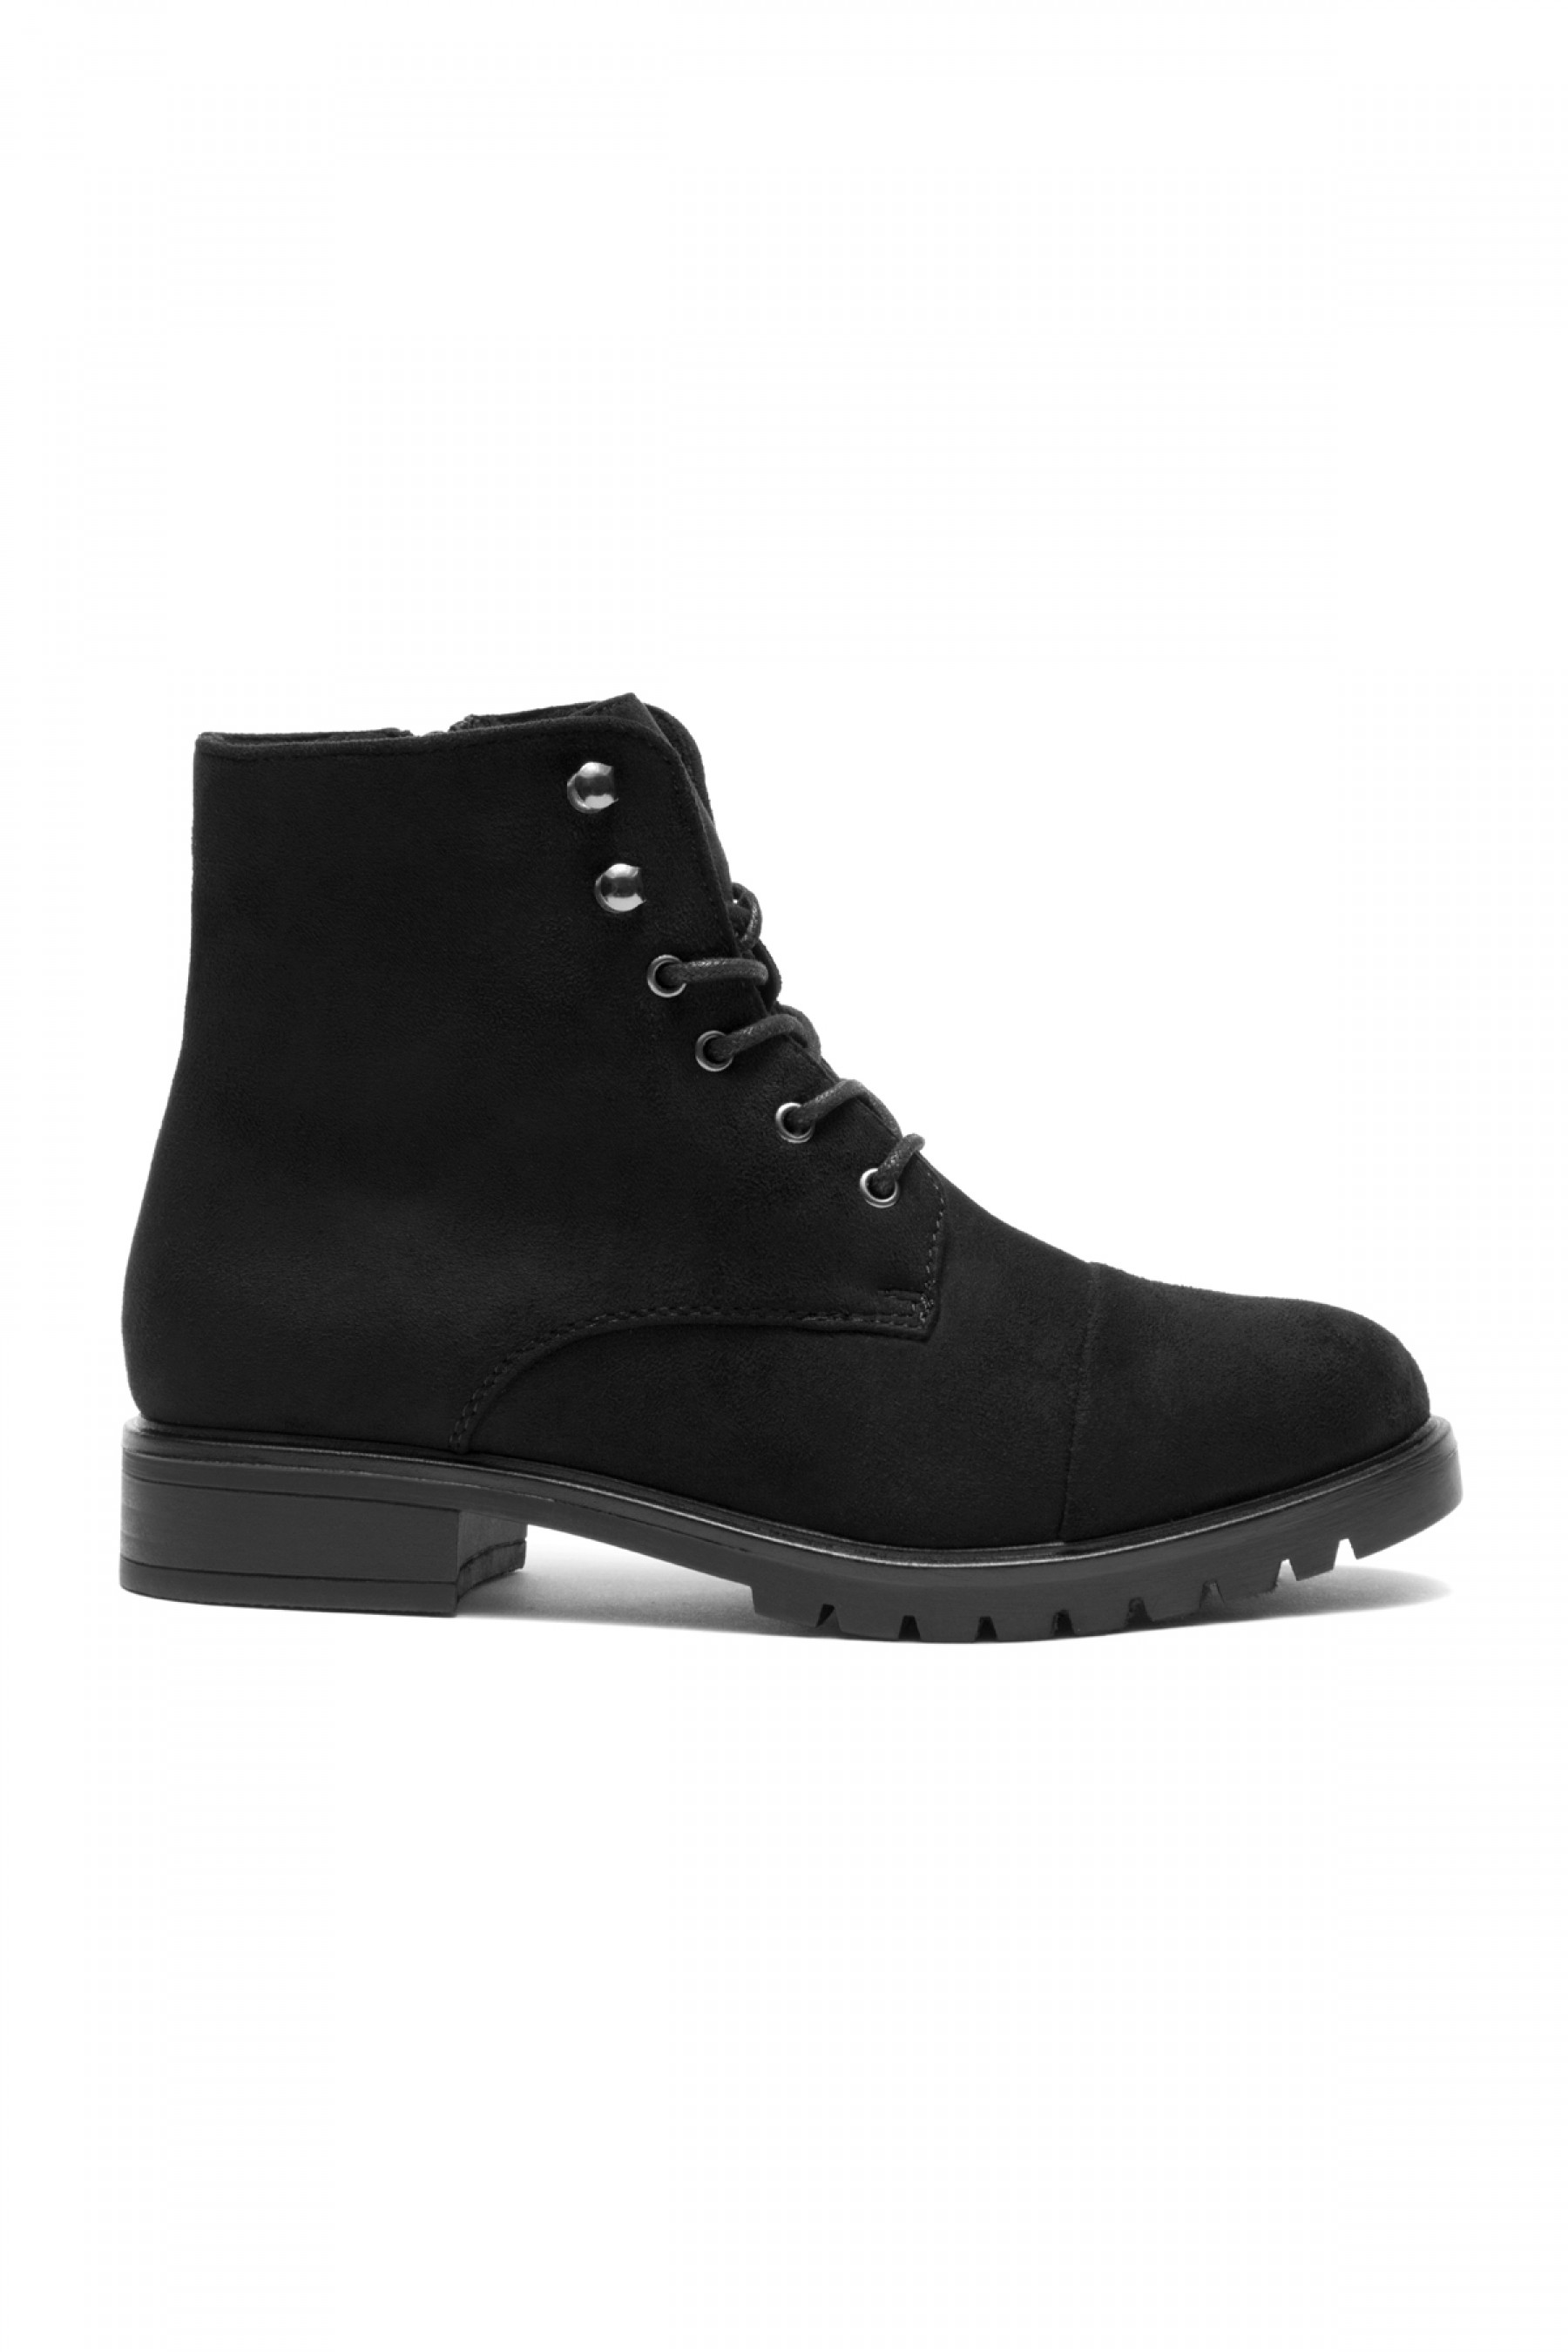 Women's Black Sayddy Combat Riding Lug Ankle Boots.